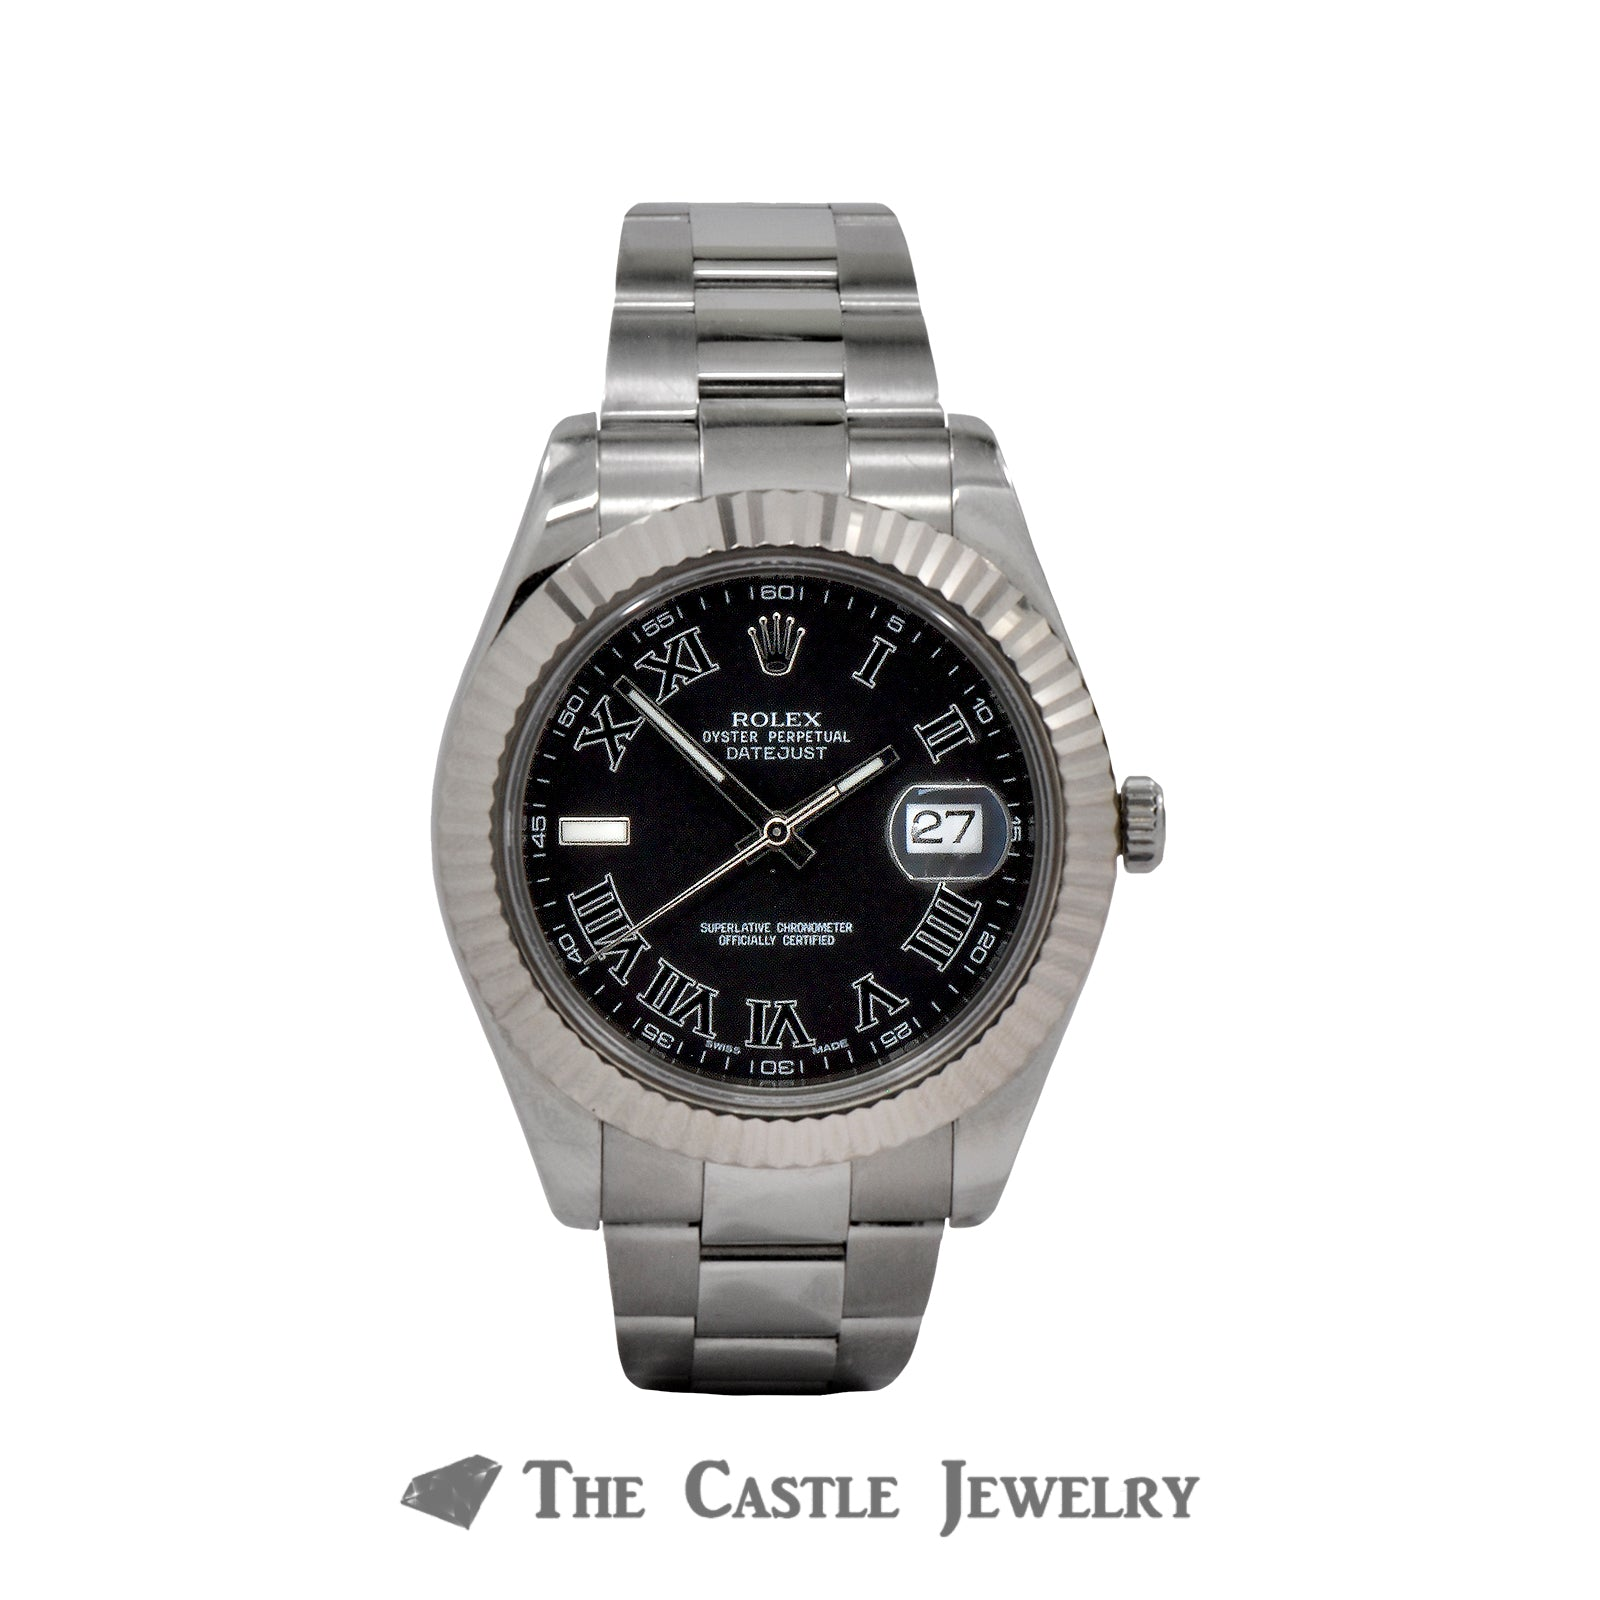 Rolex Datejust II 41mm with Roman Numeral Dial-0